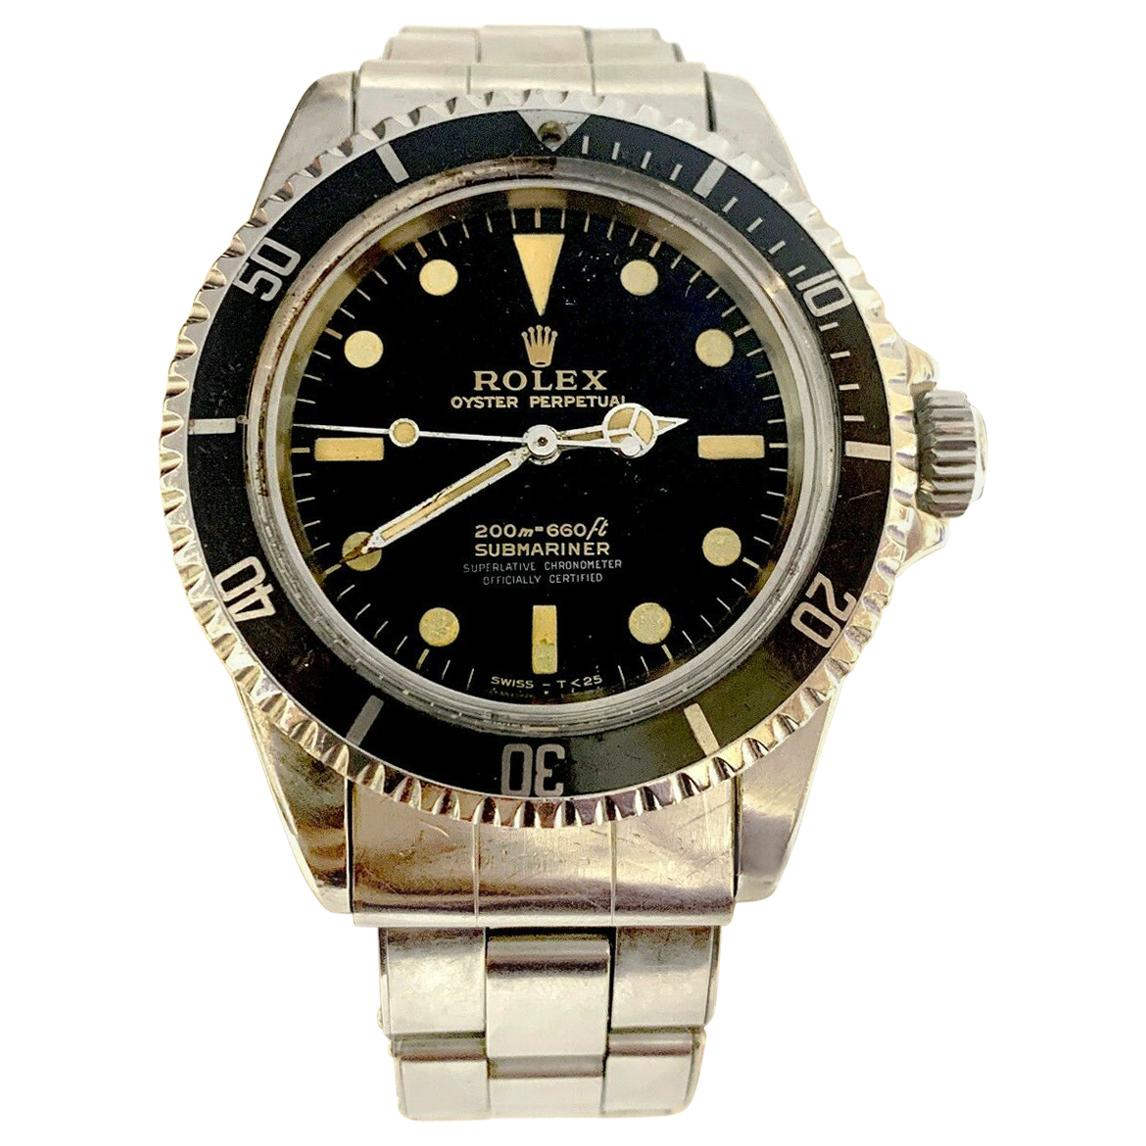 Vintage Rolex Submariner 5512 Stainless Steel Black Dial 1964 Glossy Gilt Dial